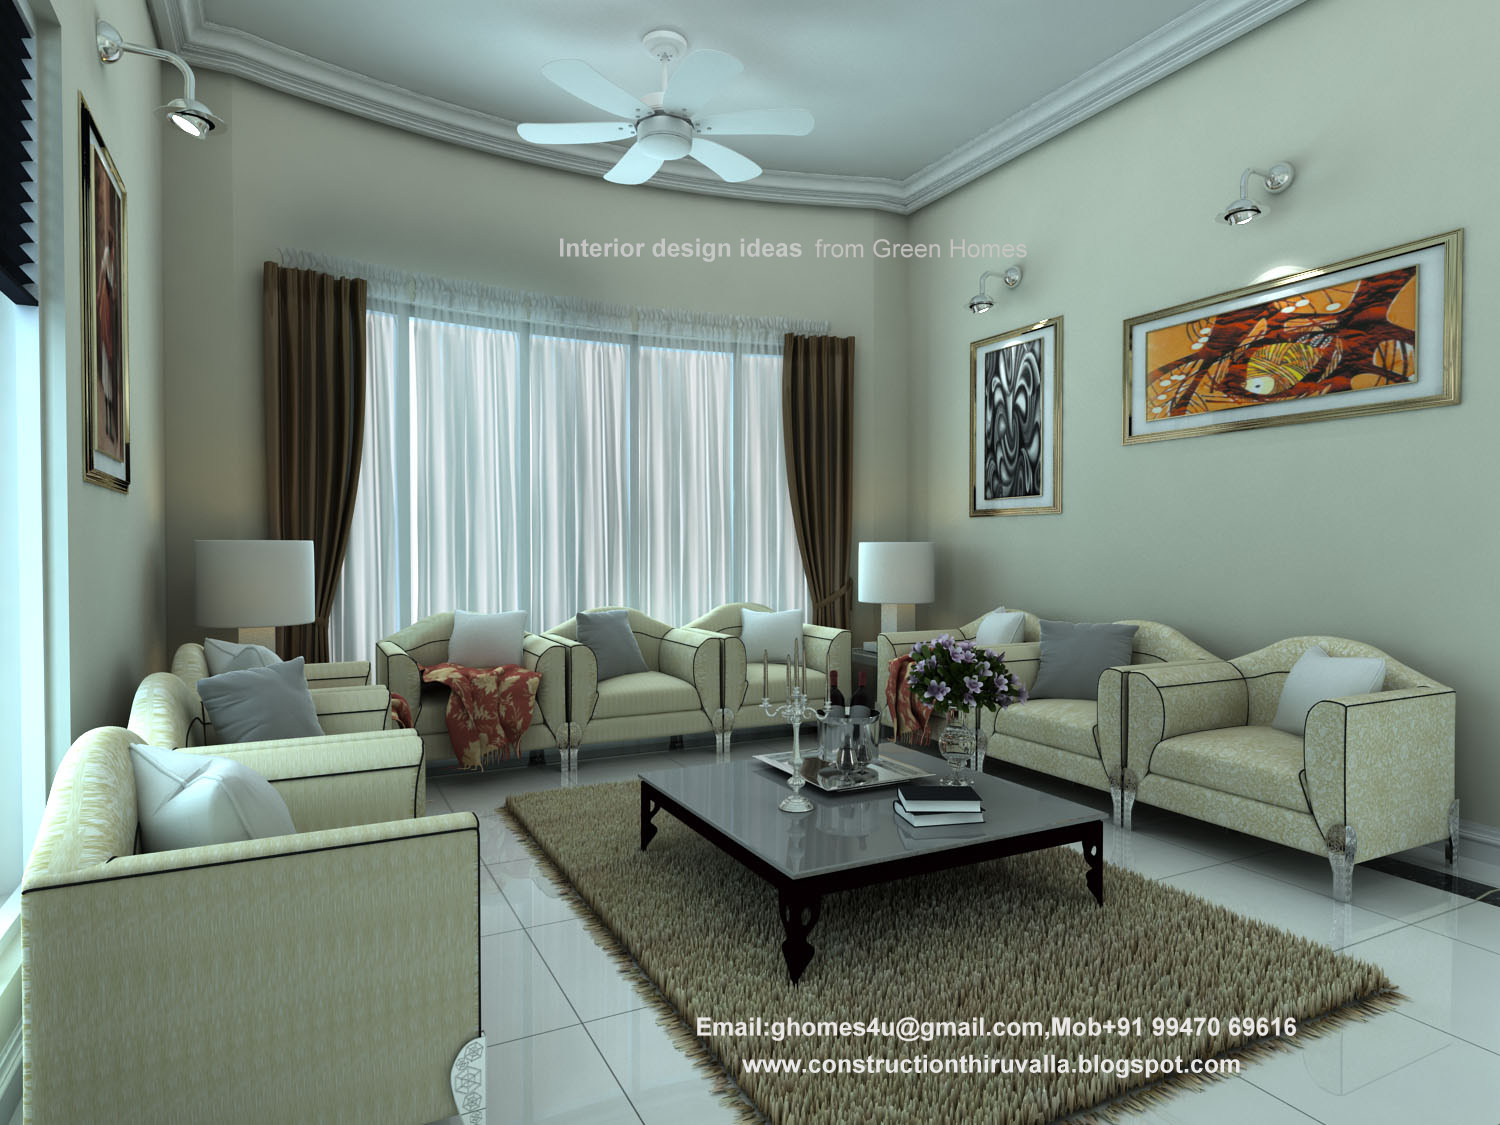 Living+room+interior+drsign,kerala+home+interior.jpg